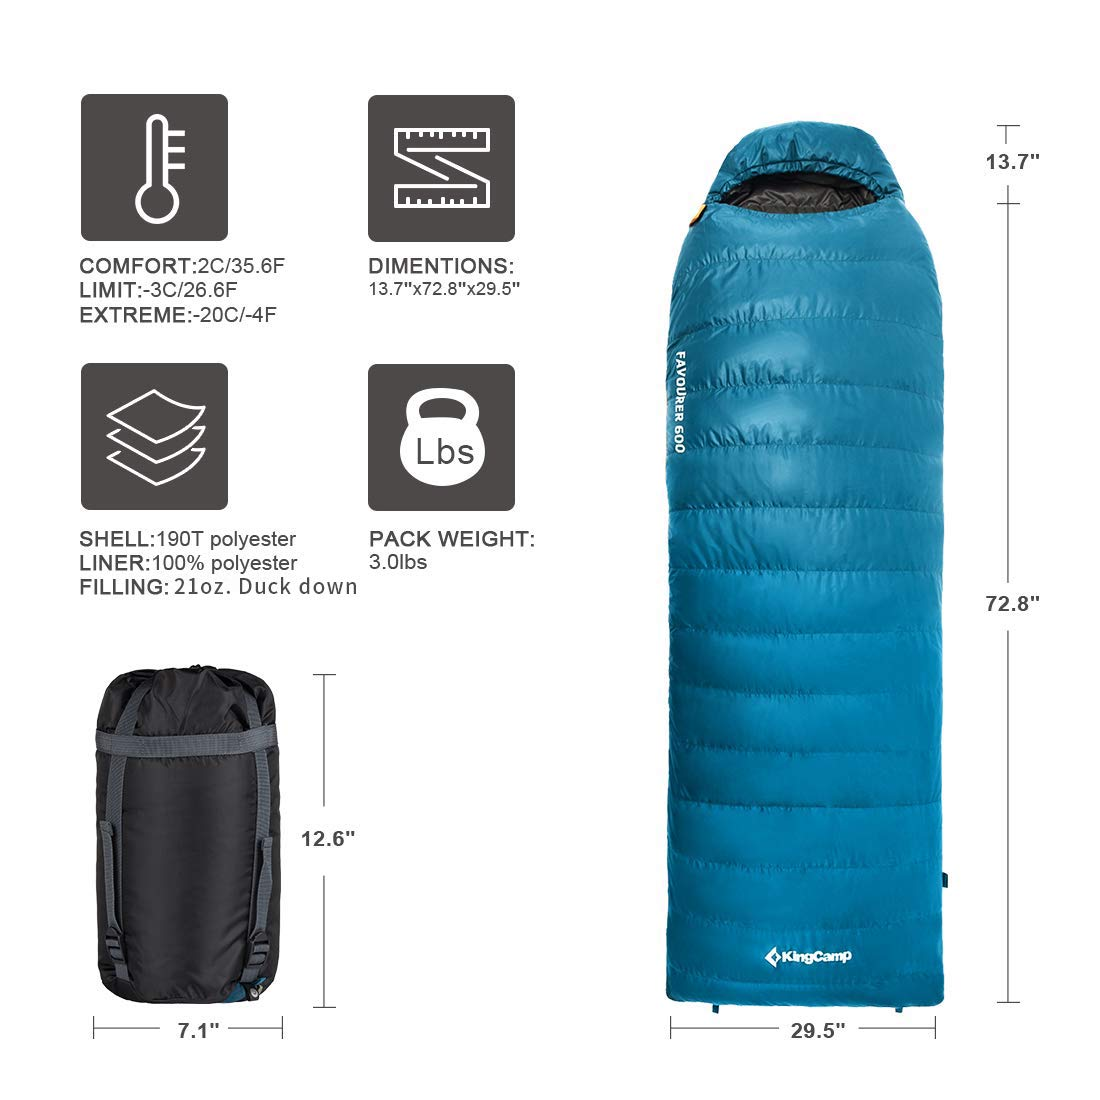 KingCamp Down Envelope Sleeping Bag for Backpacking 10.4 -4 Degree F 500 Fill Power Ultra Warm Hooded Lightweight Portable Waterproof Comfort with Compression Sack for Winter Camping Hiking